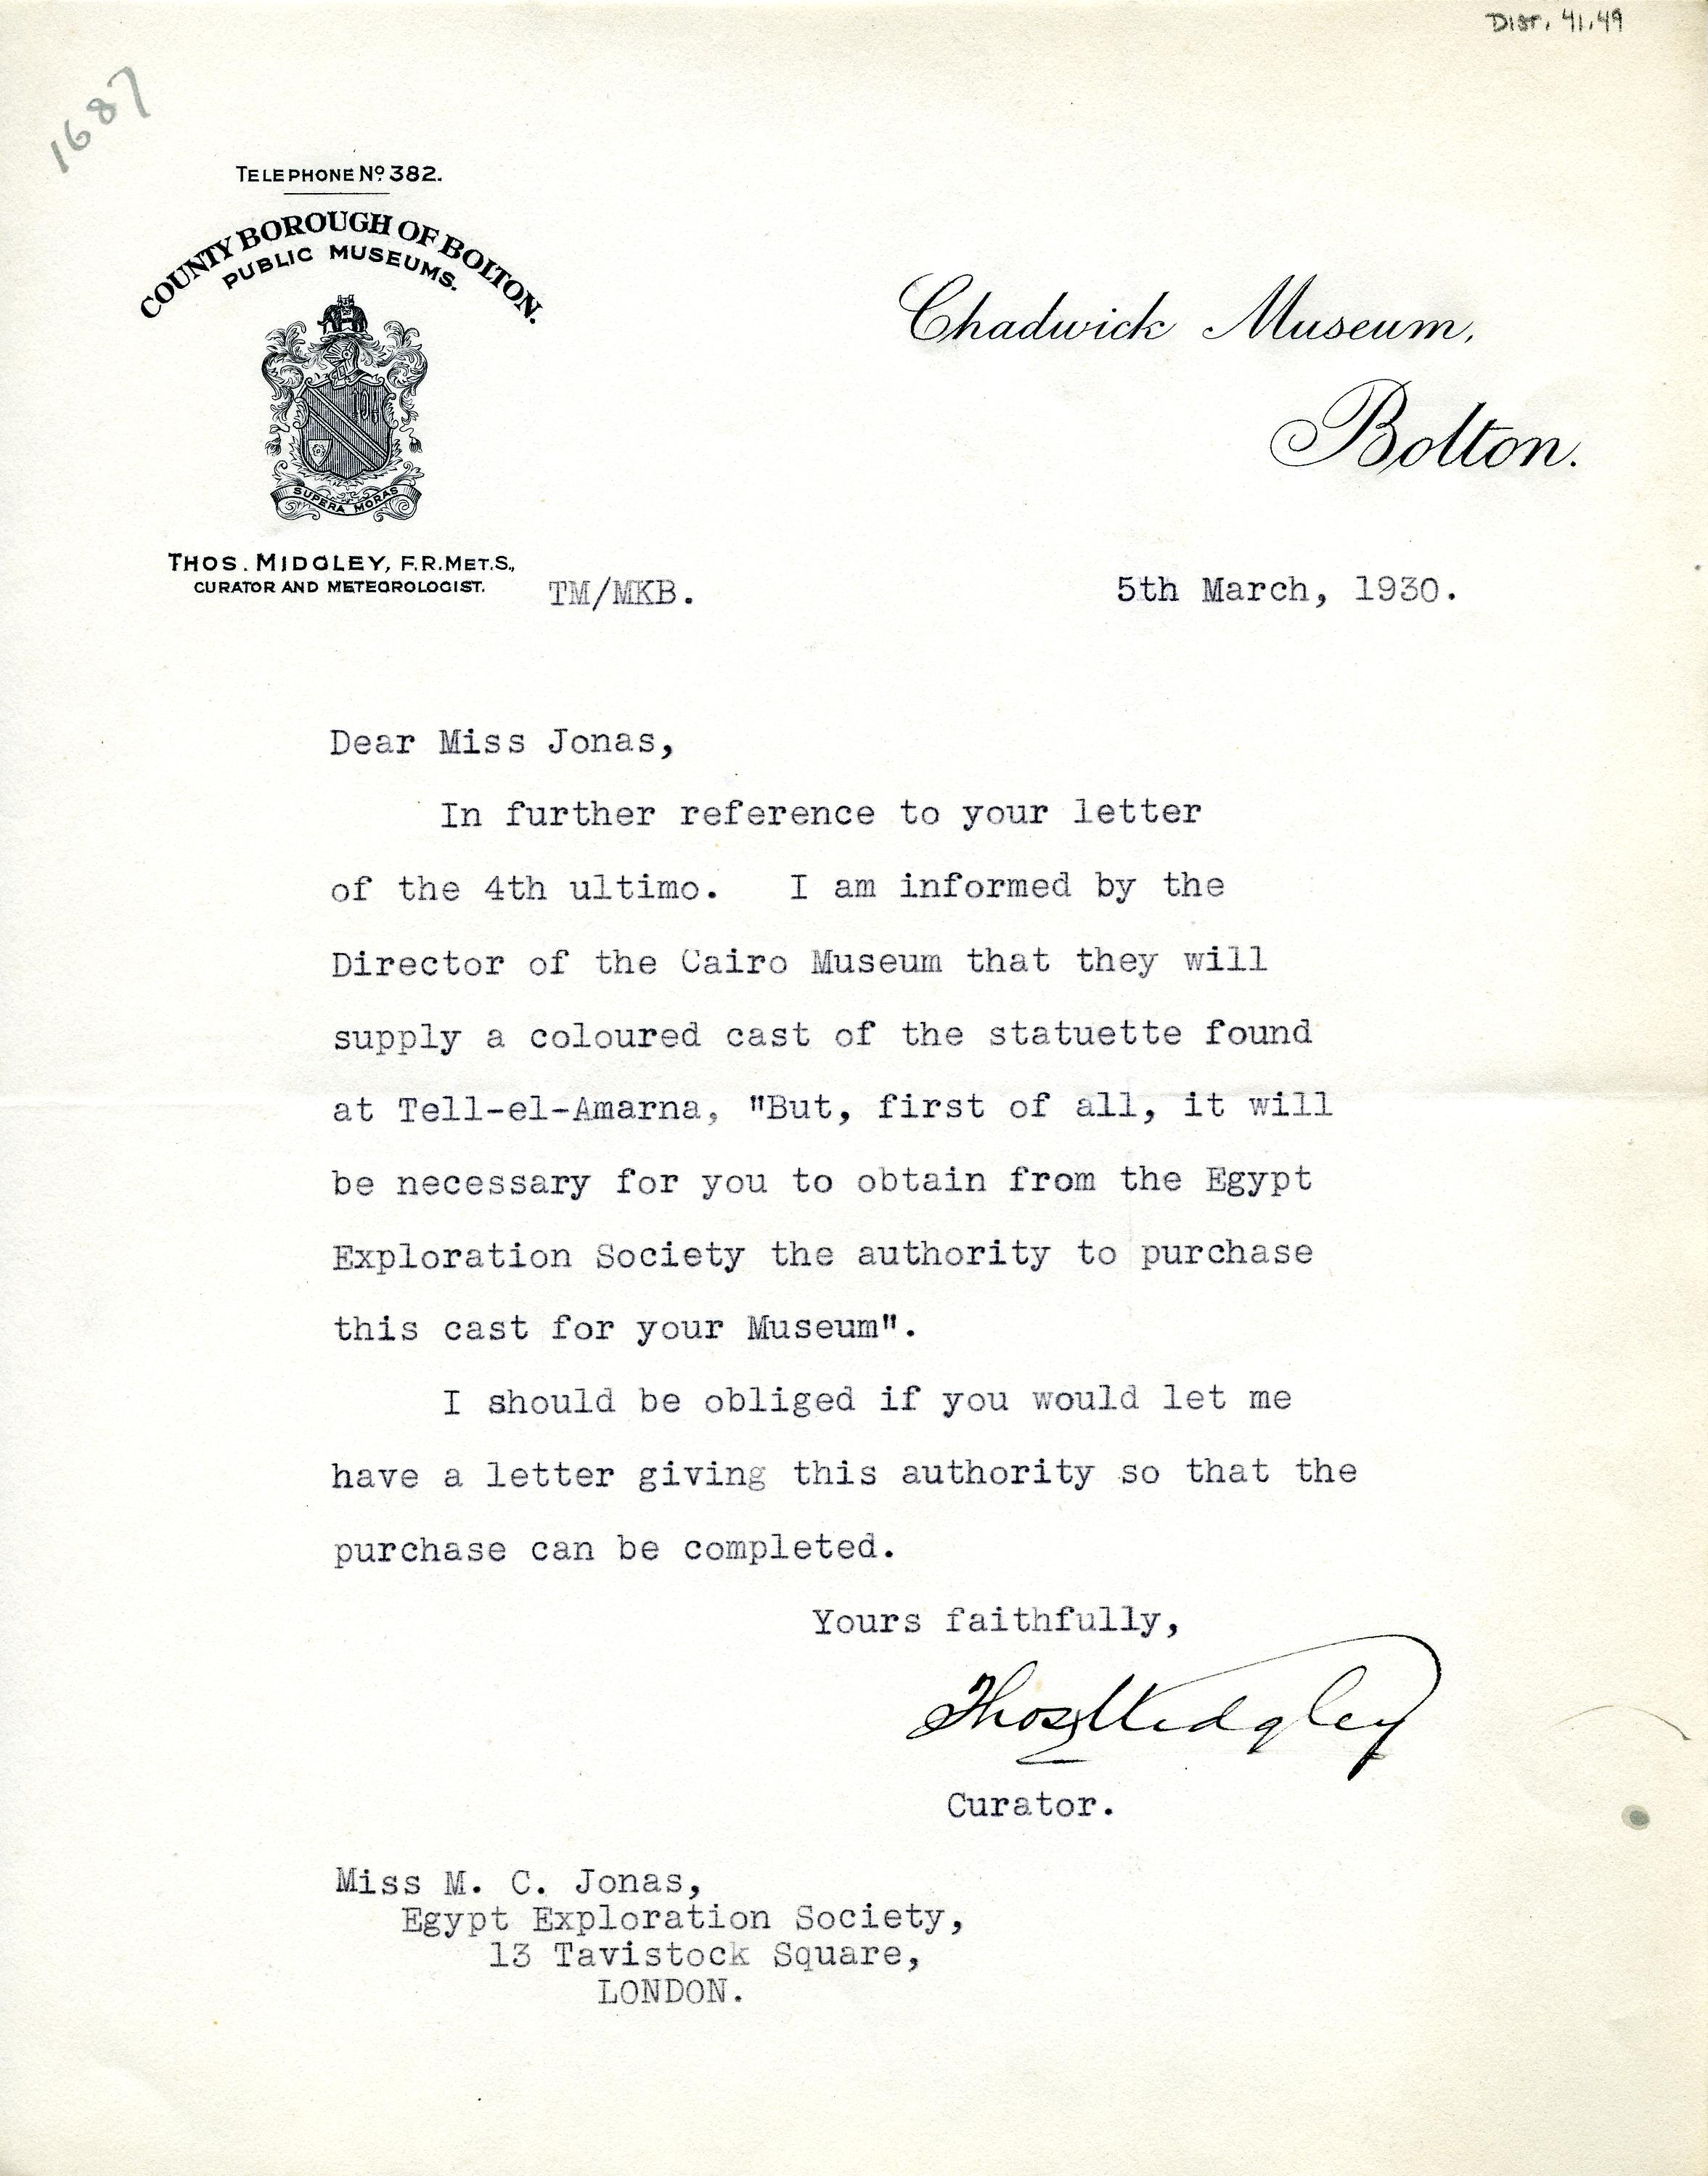 1922-76 Miscellaneous correspondence with museums DIST.41.49